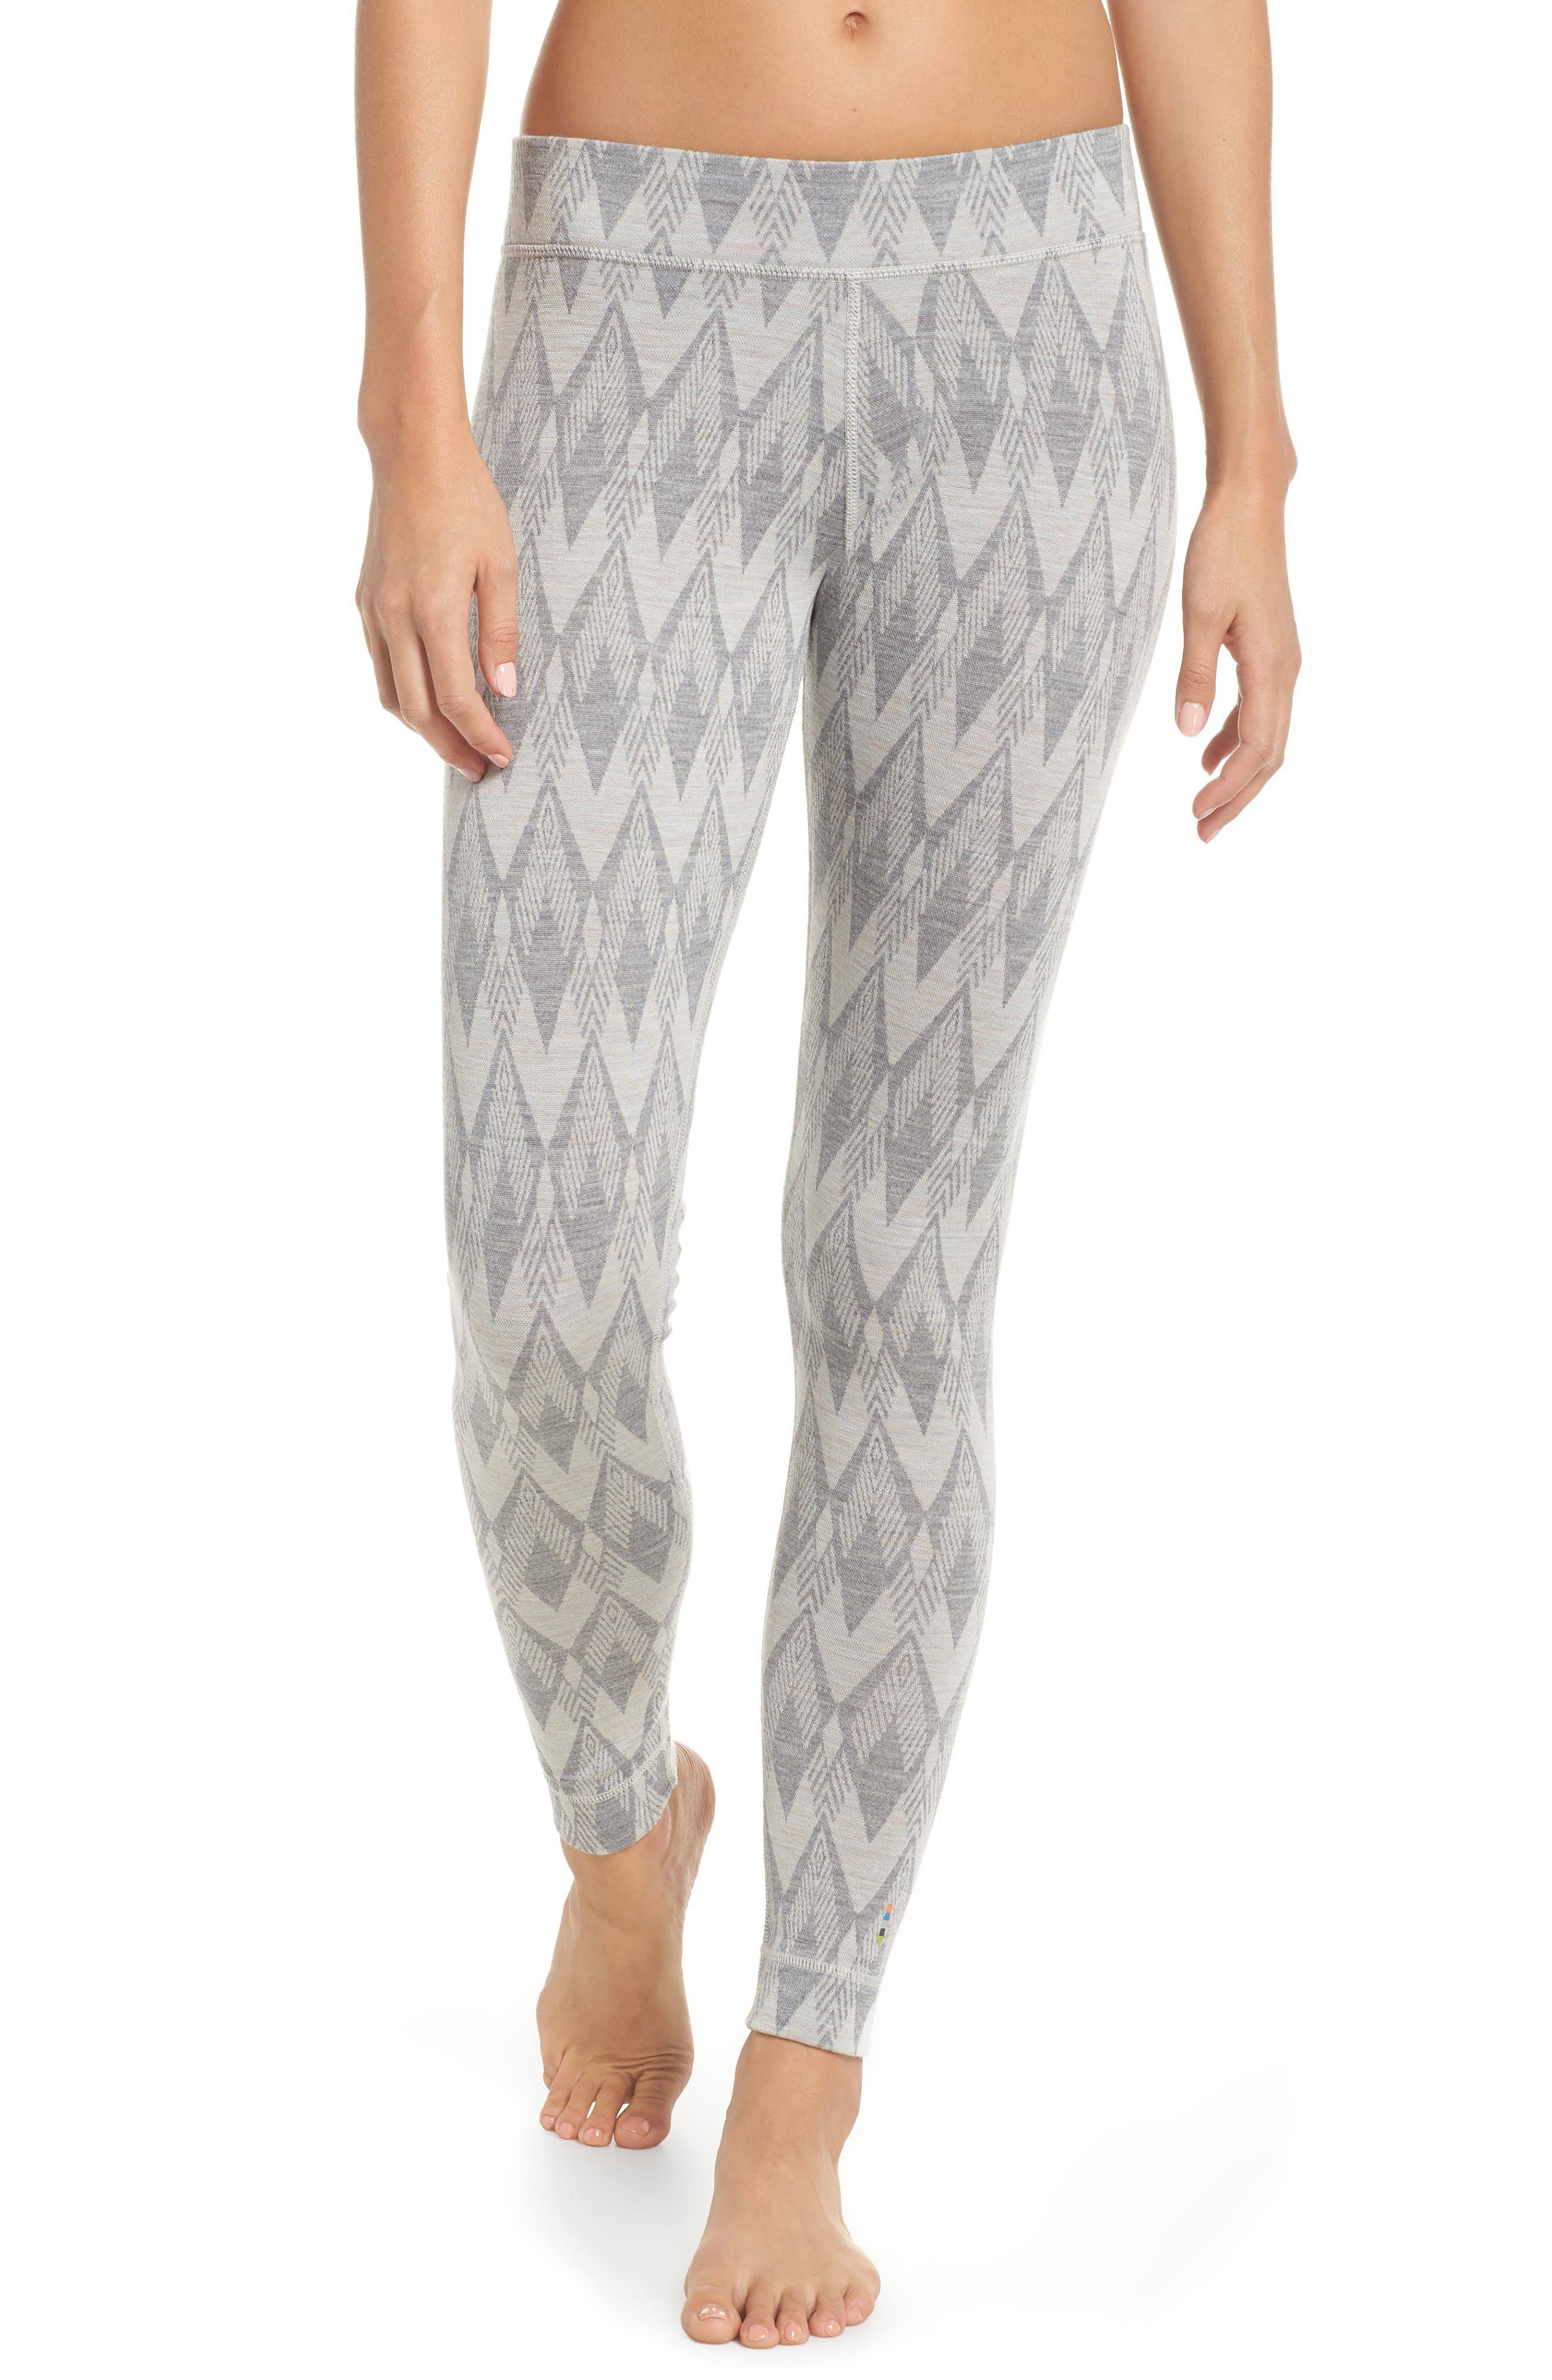 Merino 250 Base Layer Pattern Bottoms,                         Main,                         color, LIGHT GREY/ MOONBEAM HEATHER